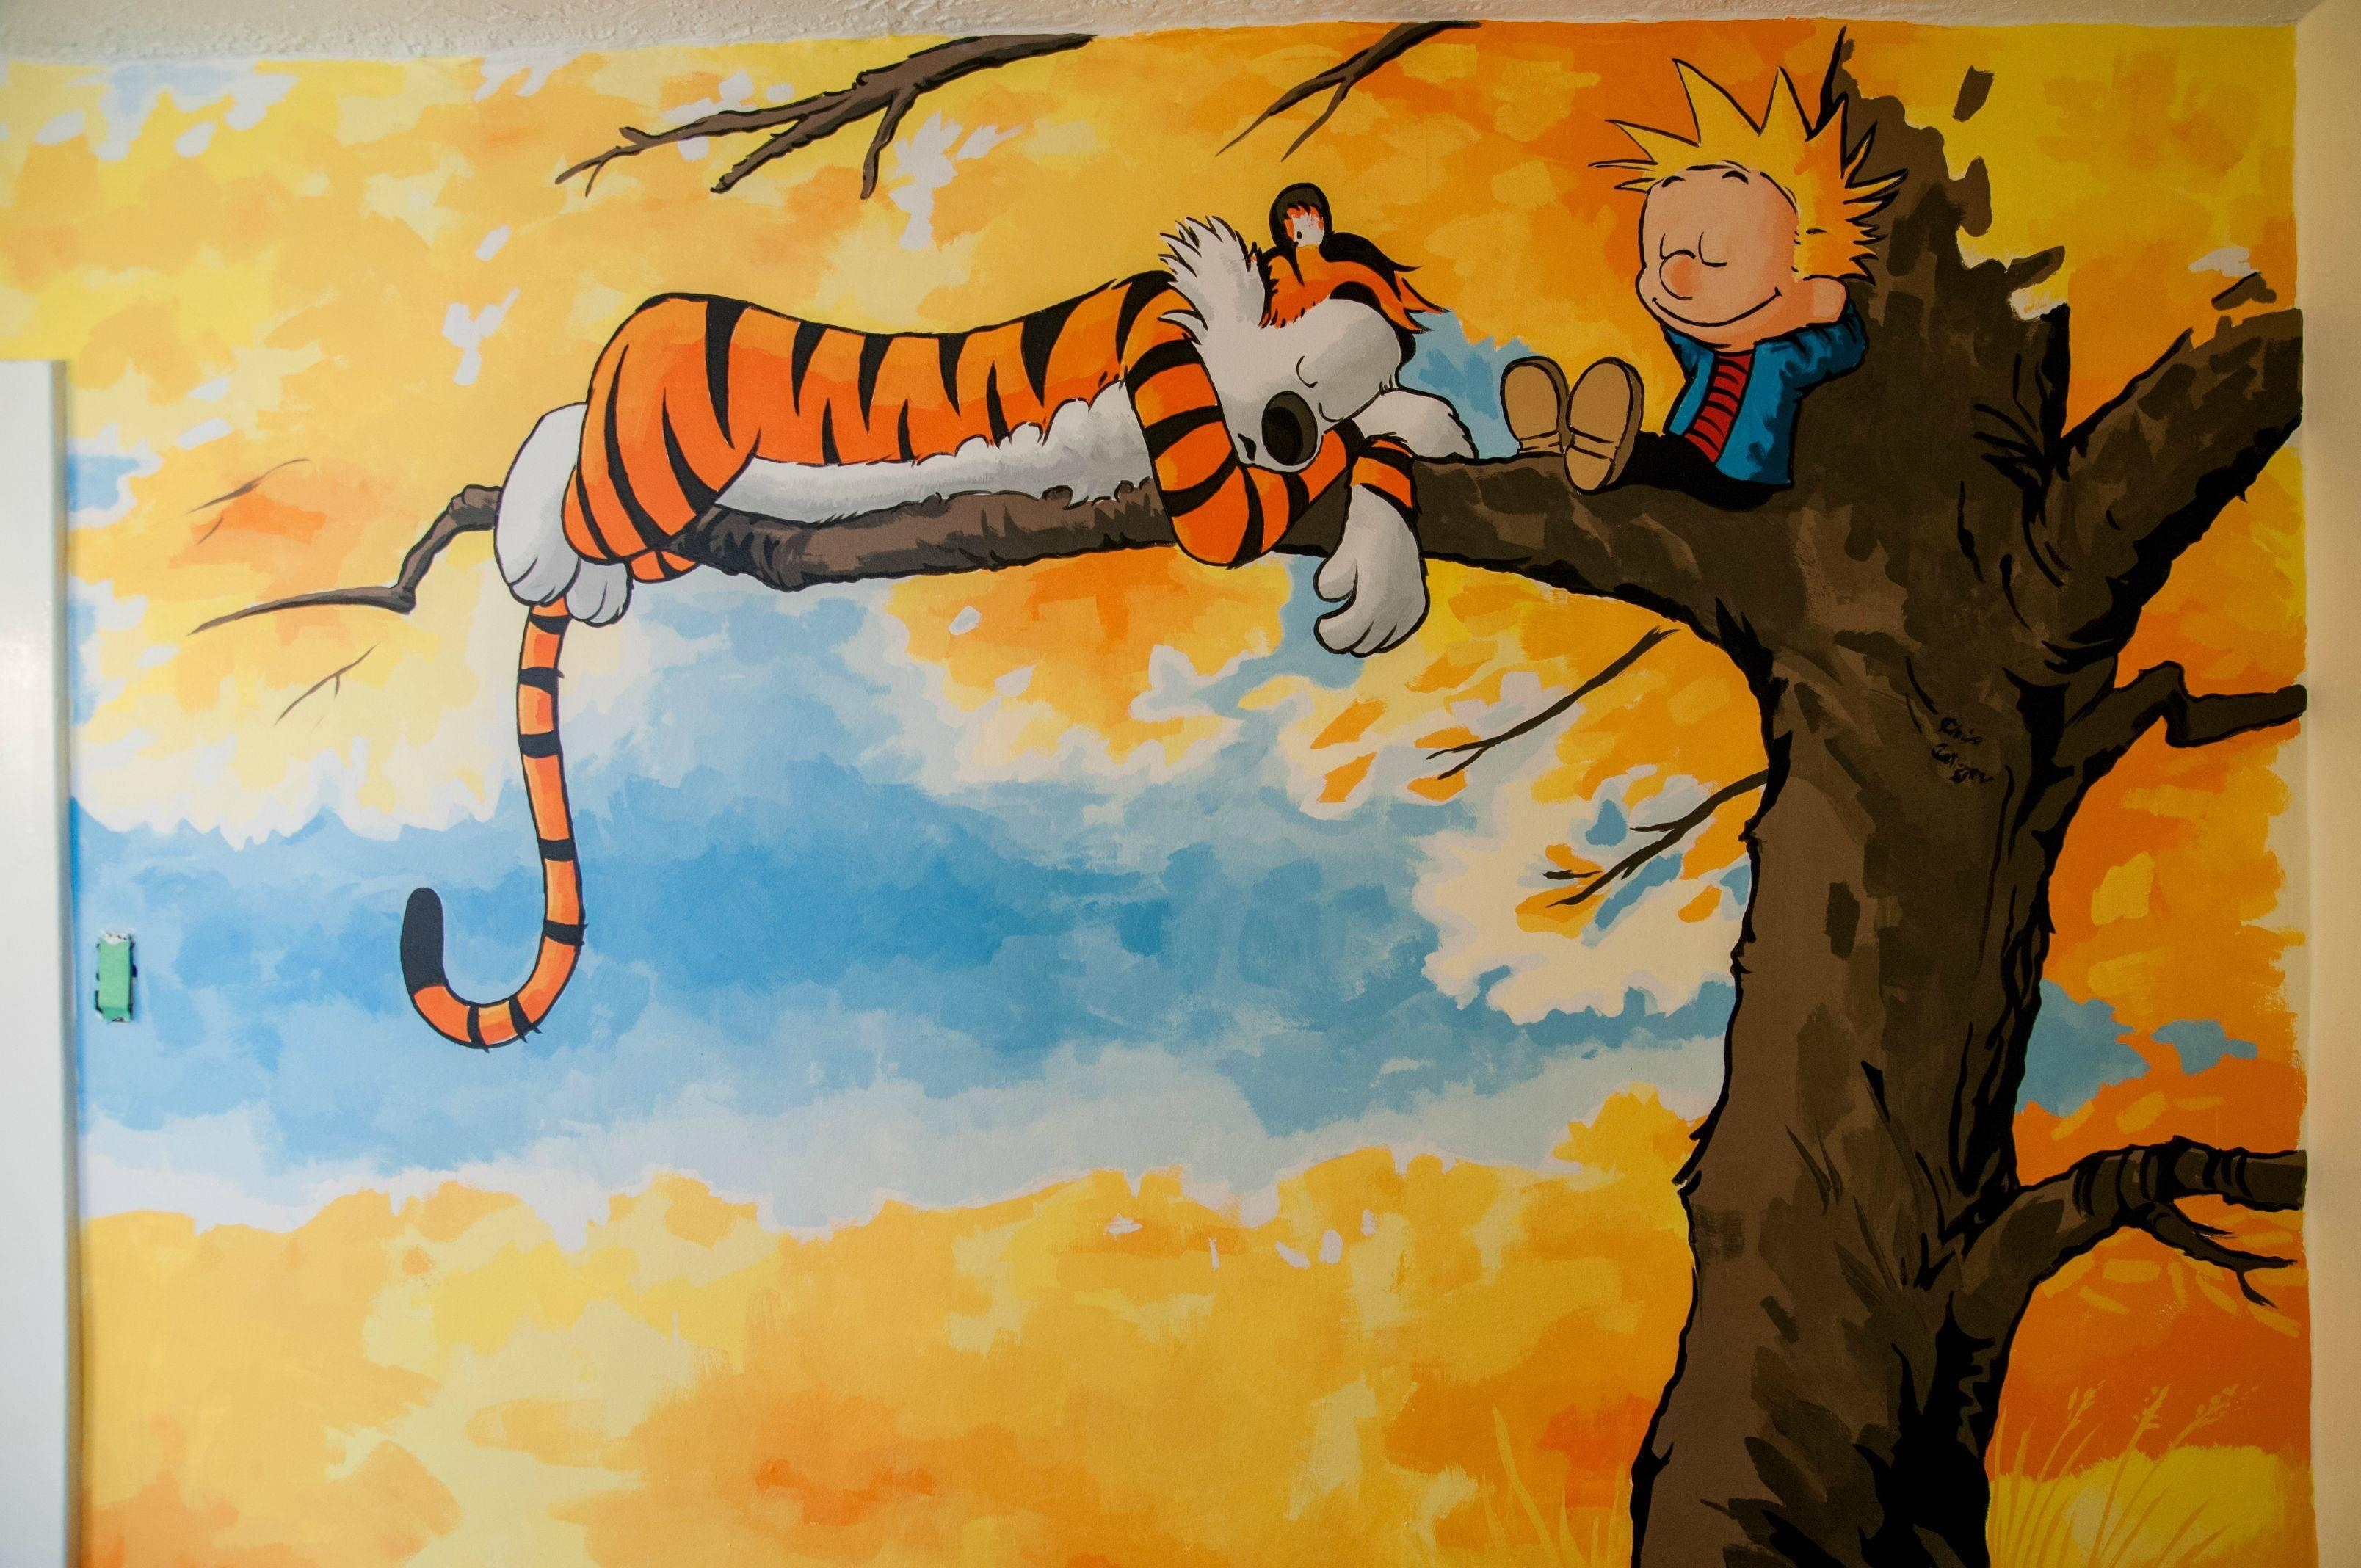 Friends Asked Me To Paint A Calvin & Hobbes Mural In Their Nursery Intended For Calvin And Hobbes Wall Art (View 5 of 20)